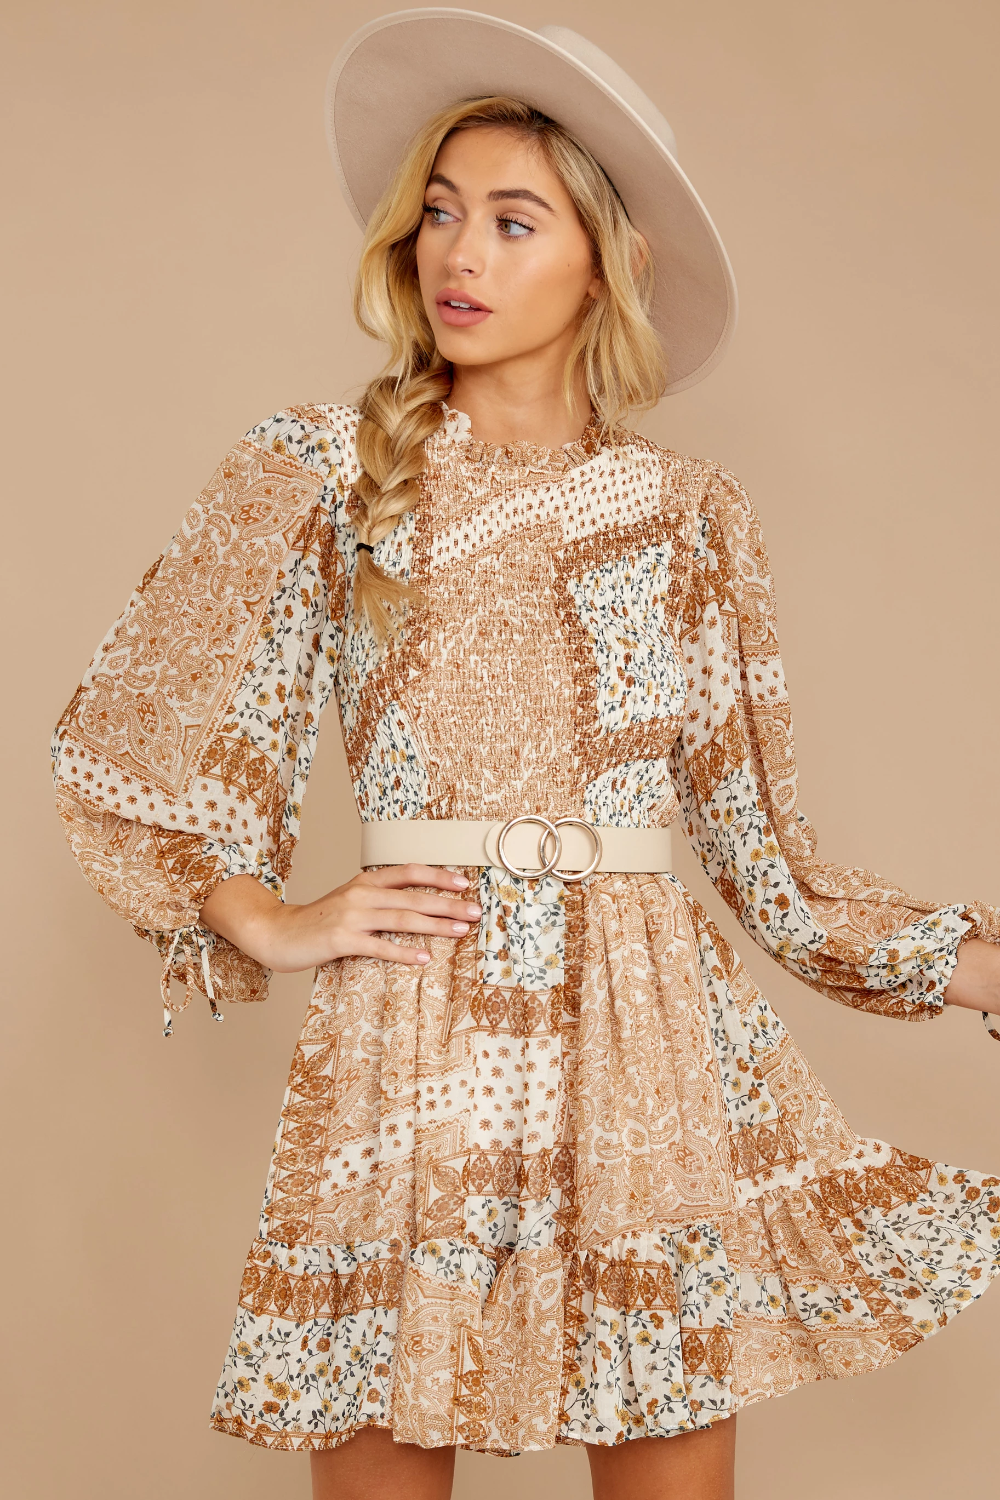 Chic Beige Dress Paisley Floral Print Smock Dress Dress 60 00 Red Dress Wedding Guest Outfit Mini Dress Fashion Guest Outfit [ 1500 x 1000 Pixel ]